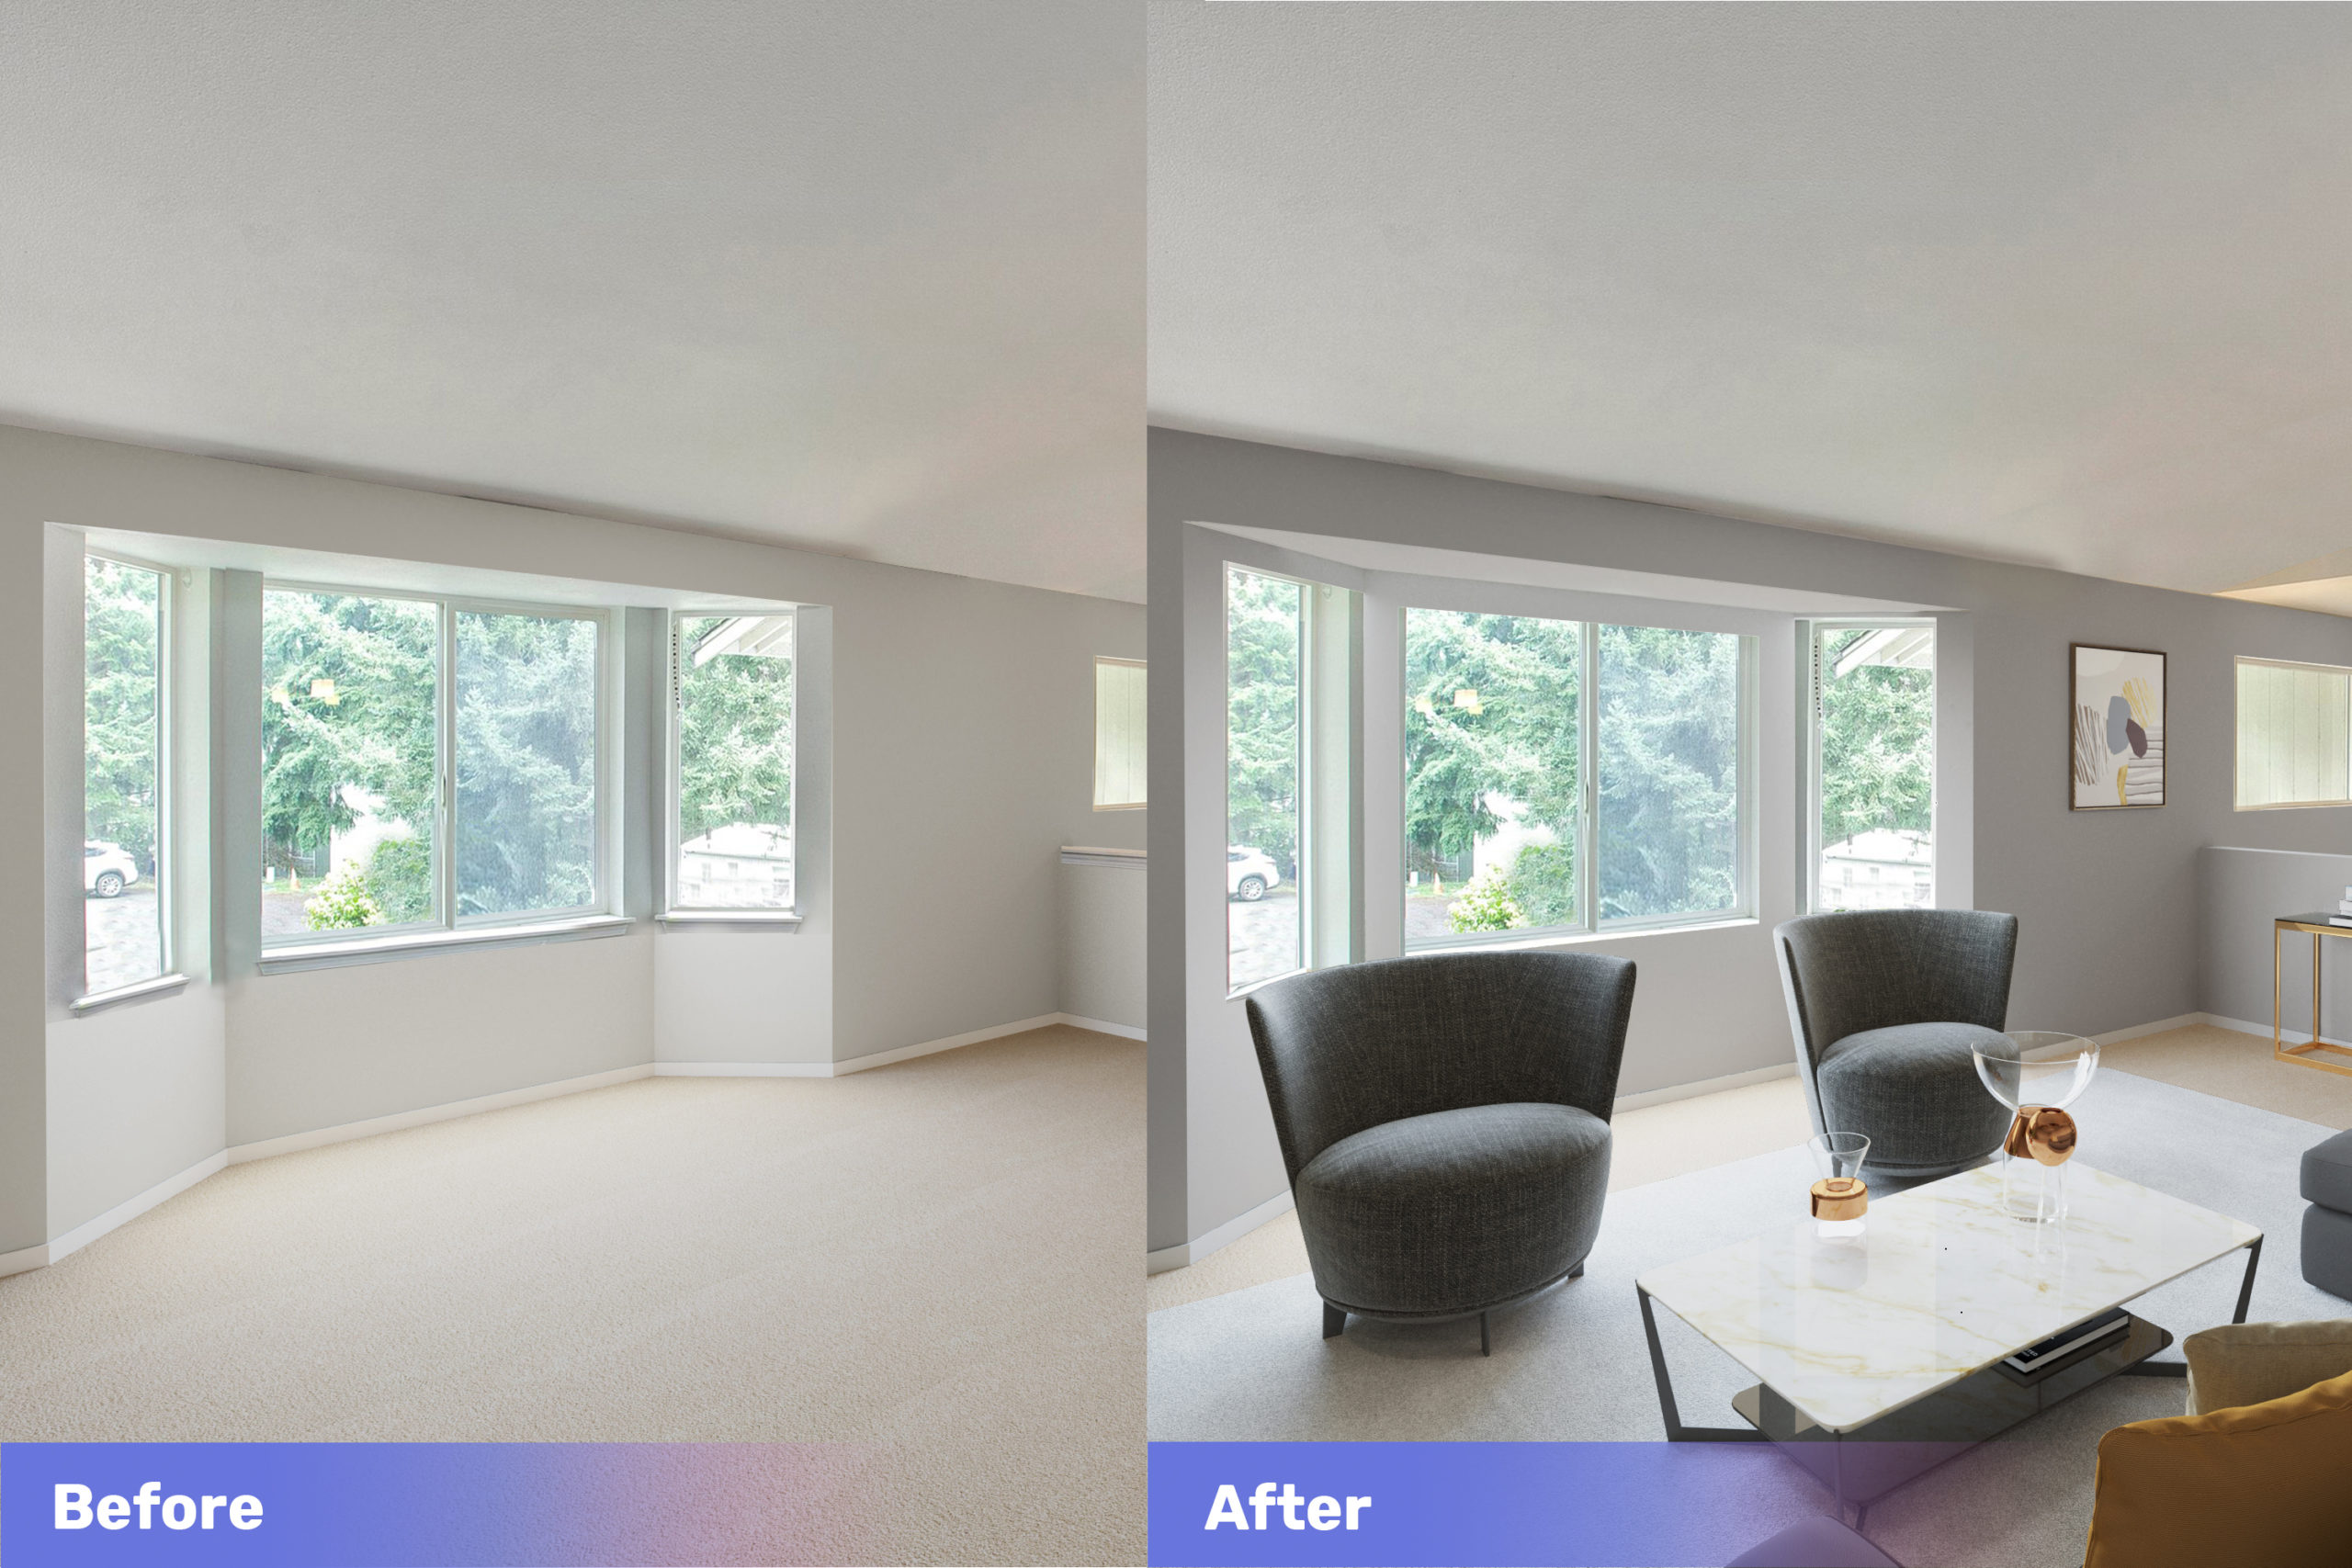 5 Reasons Why You Should Choose Phixer For Real Estate Photo Editing